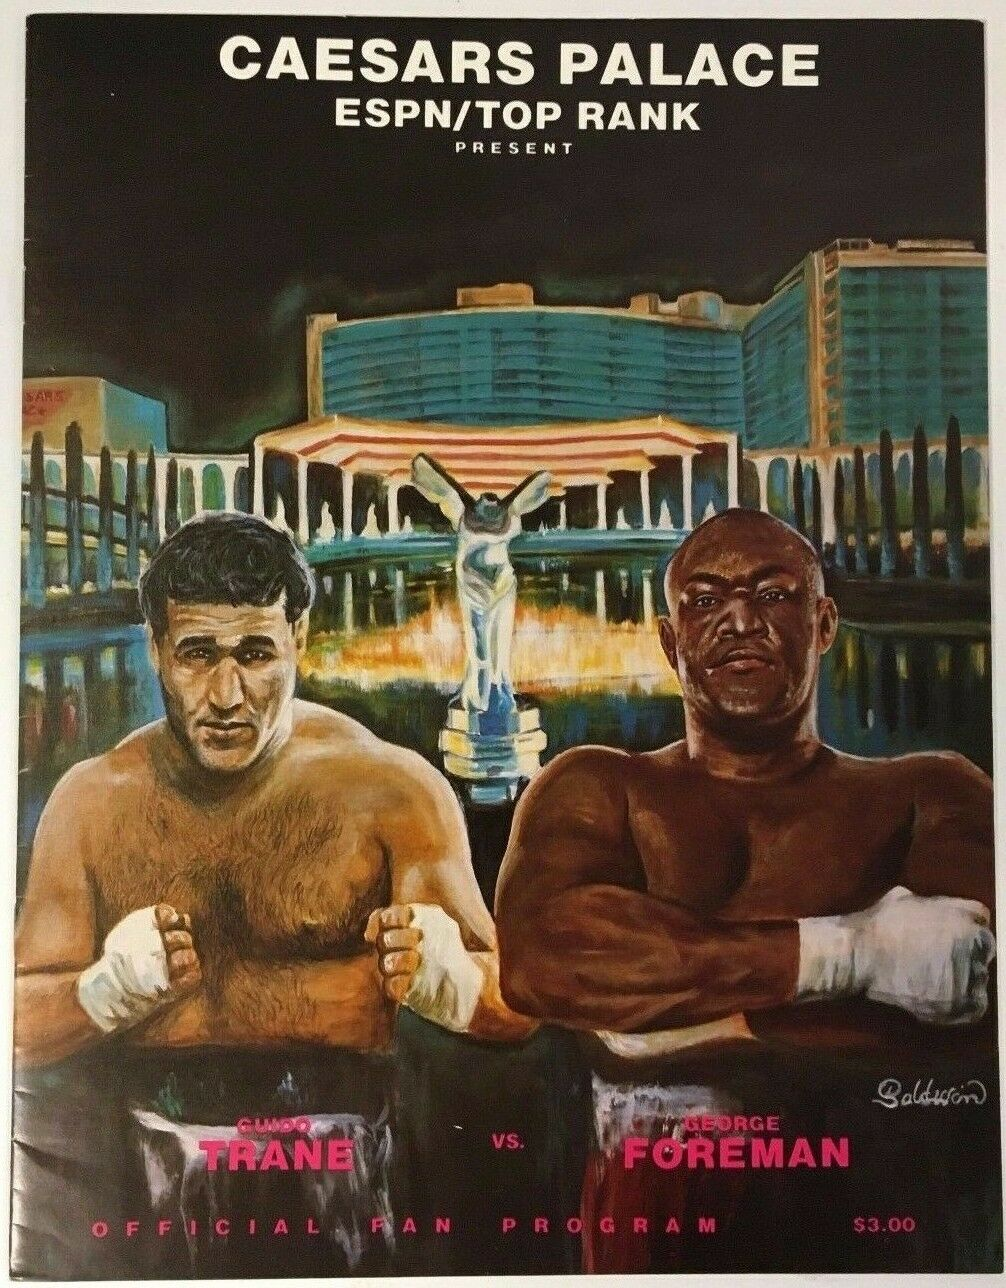 1988 George Foreman vs Guido Trane Boxing Program Caesars Palace Las Vegas Fight